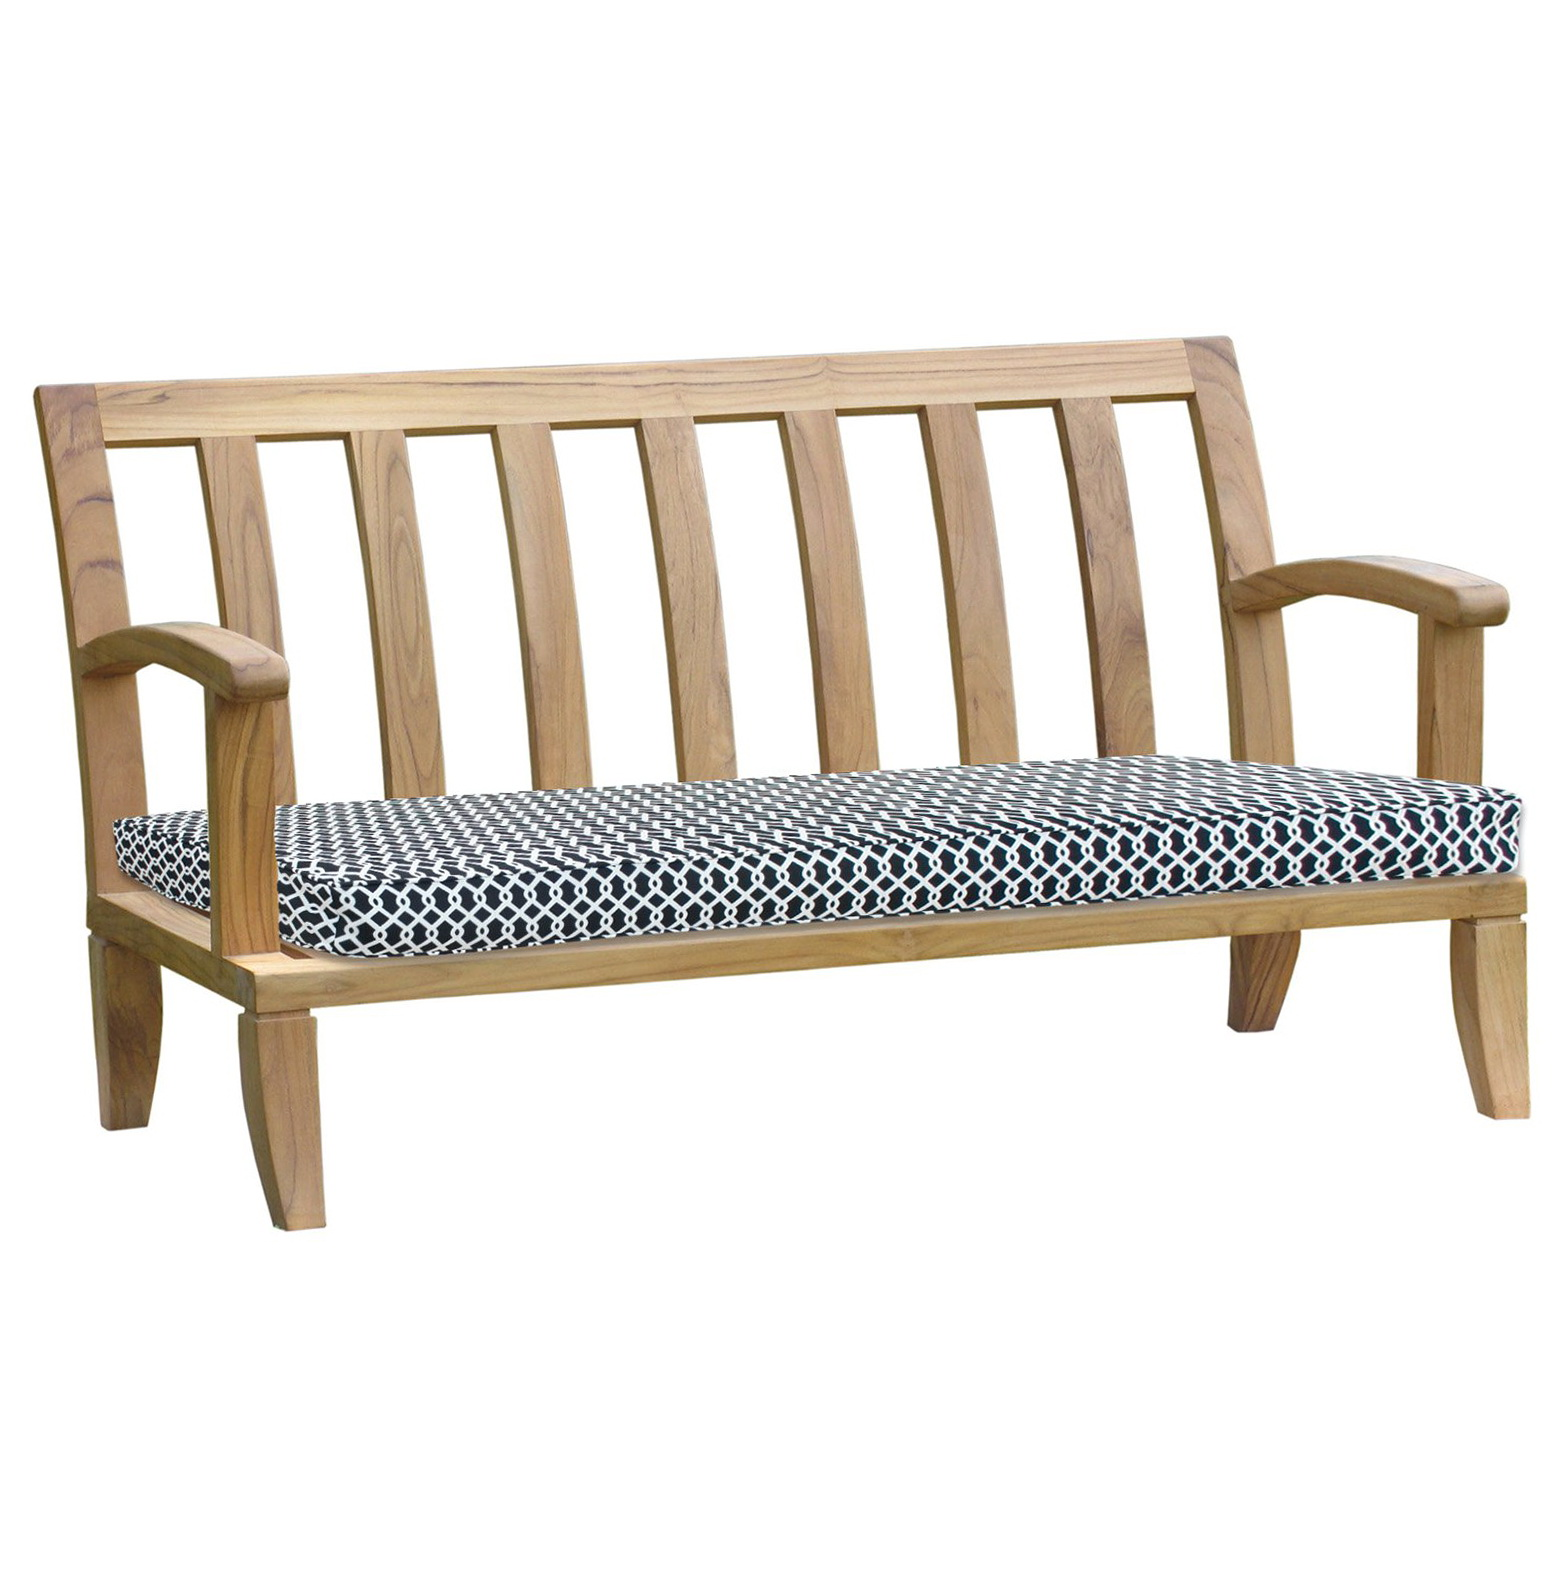 Outdoor Bench Seat Cushions Nz Home Design Ideas